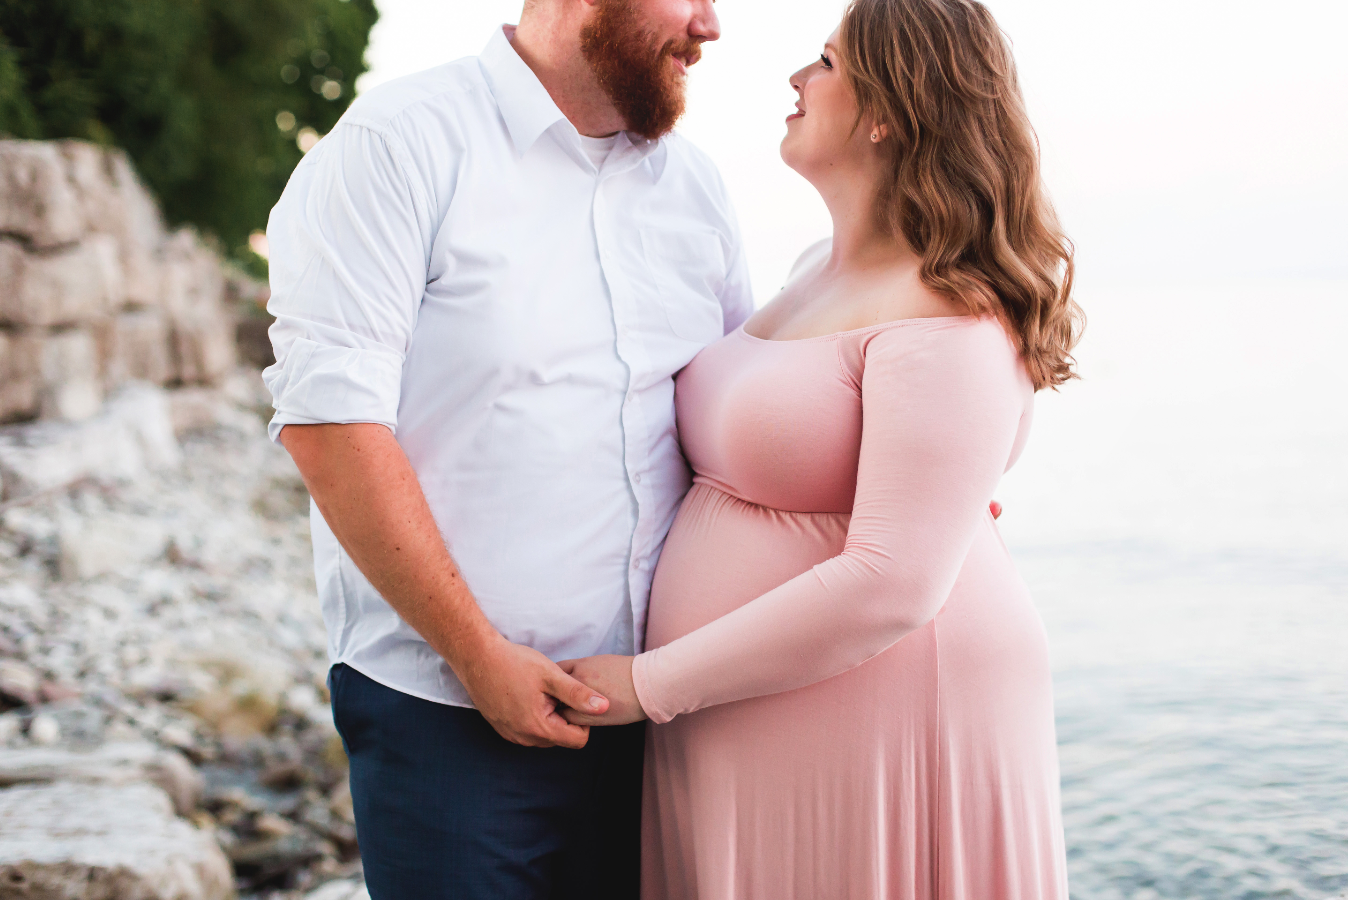 Maternity-Session-Photographer-Hamilton-Oakville-Waterfront-Golden-Hour-Glow-Photography-Moments-by-Lauren-Photo-Image-13.png